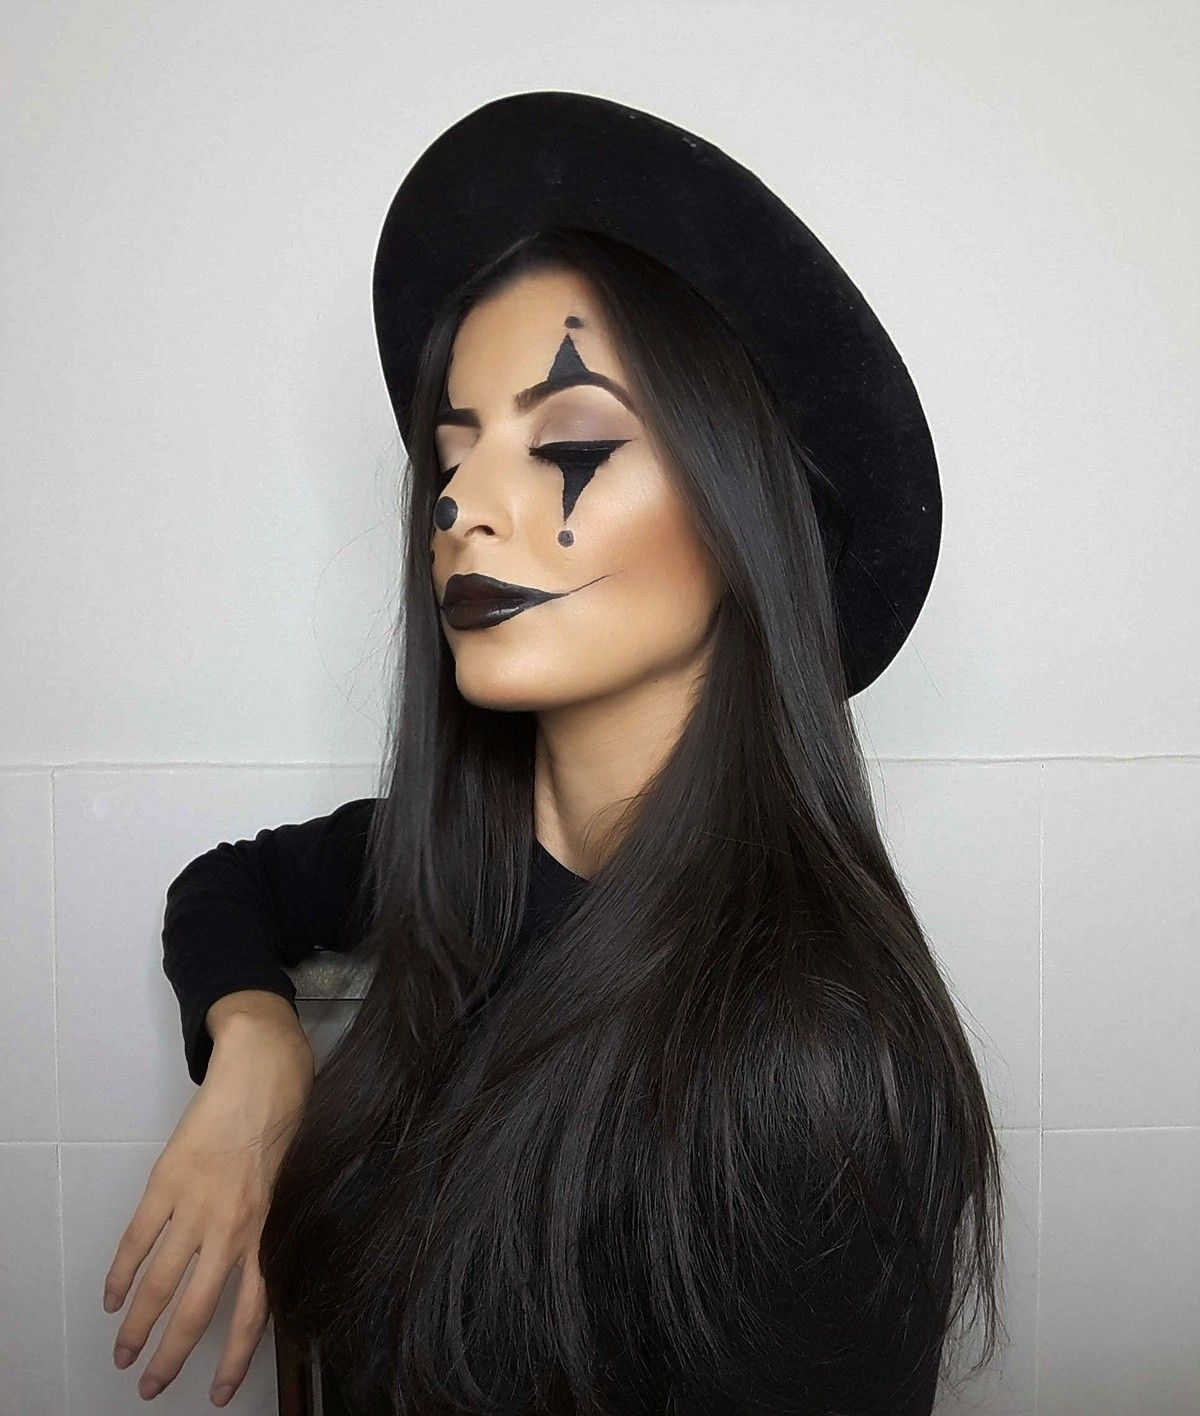 Hollowin makeup Mimos maquillaje mujer, Maquillaje